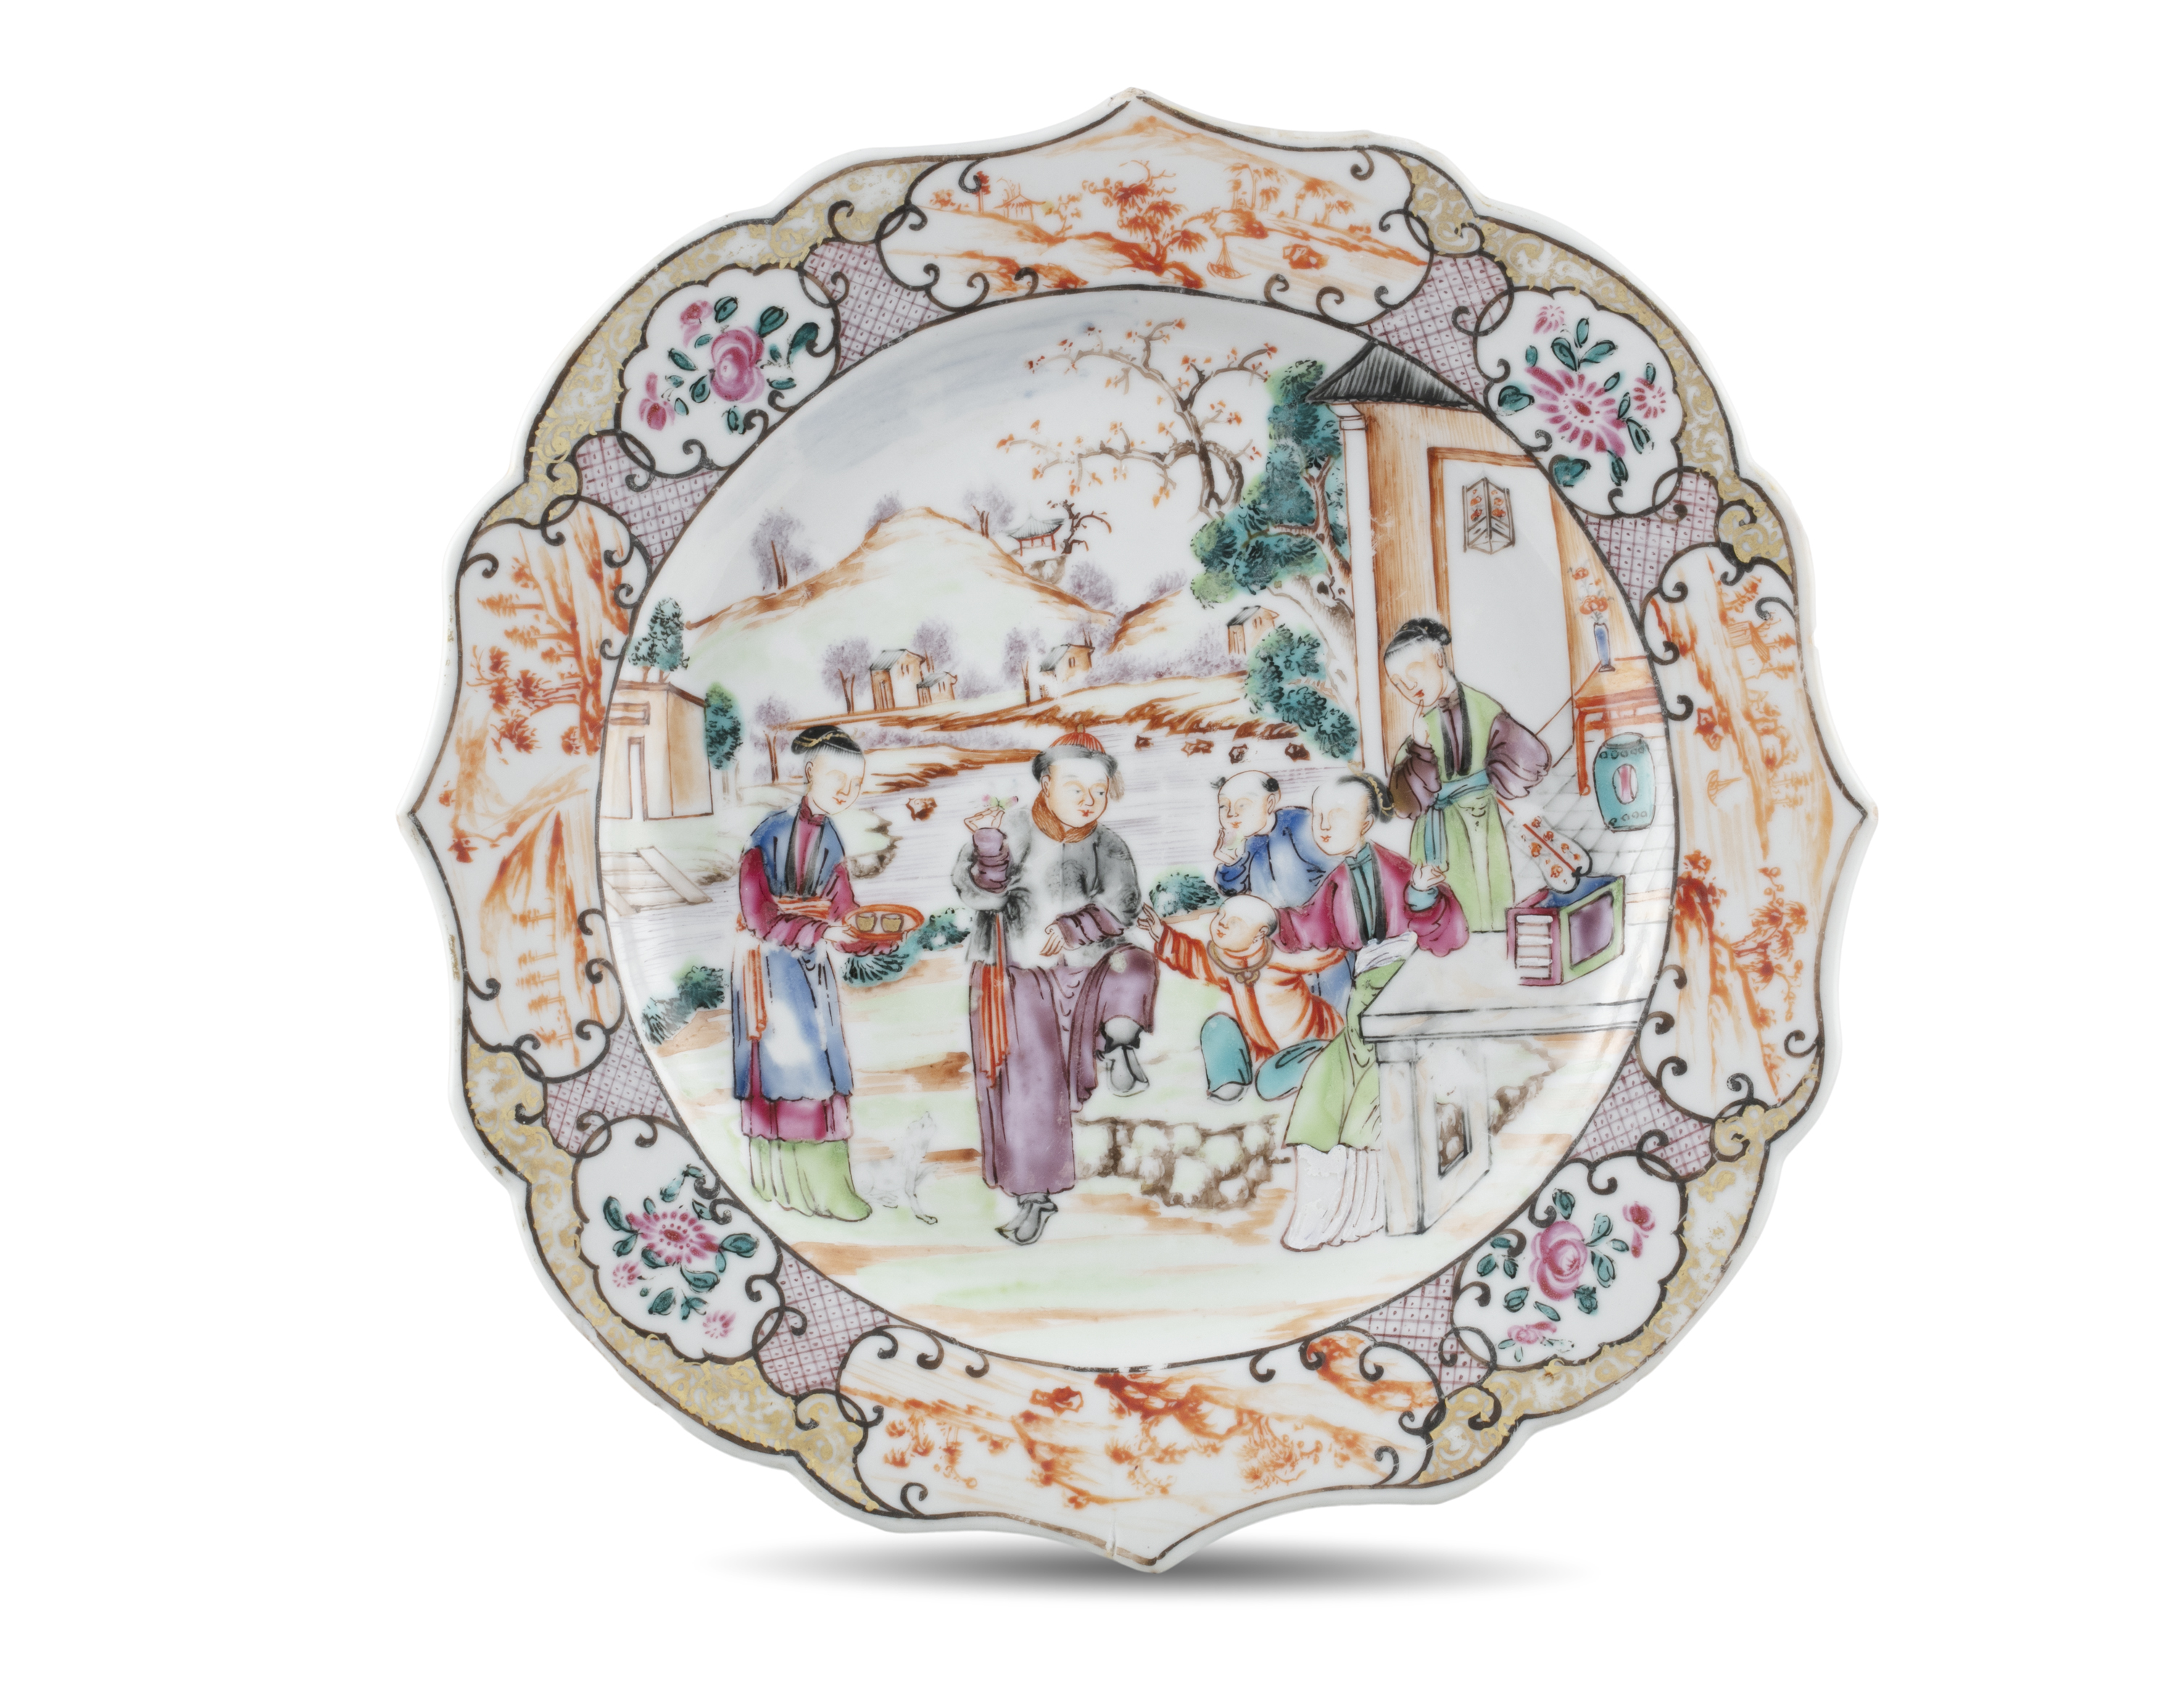 A LOBED CHINESE EXPORT 'MANDARIN' PORCELAIN PLATE China, Qing Dynasty, 18th century Richly adorned